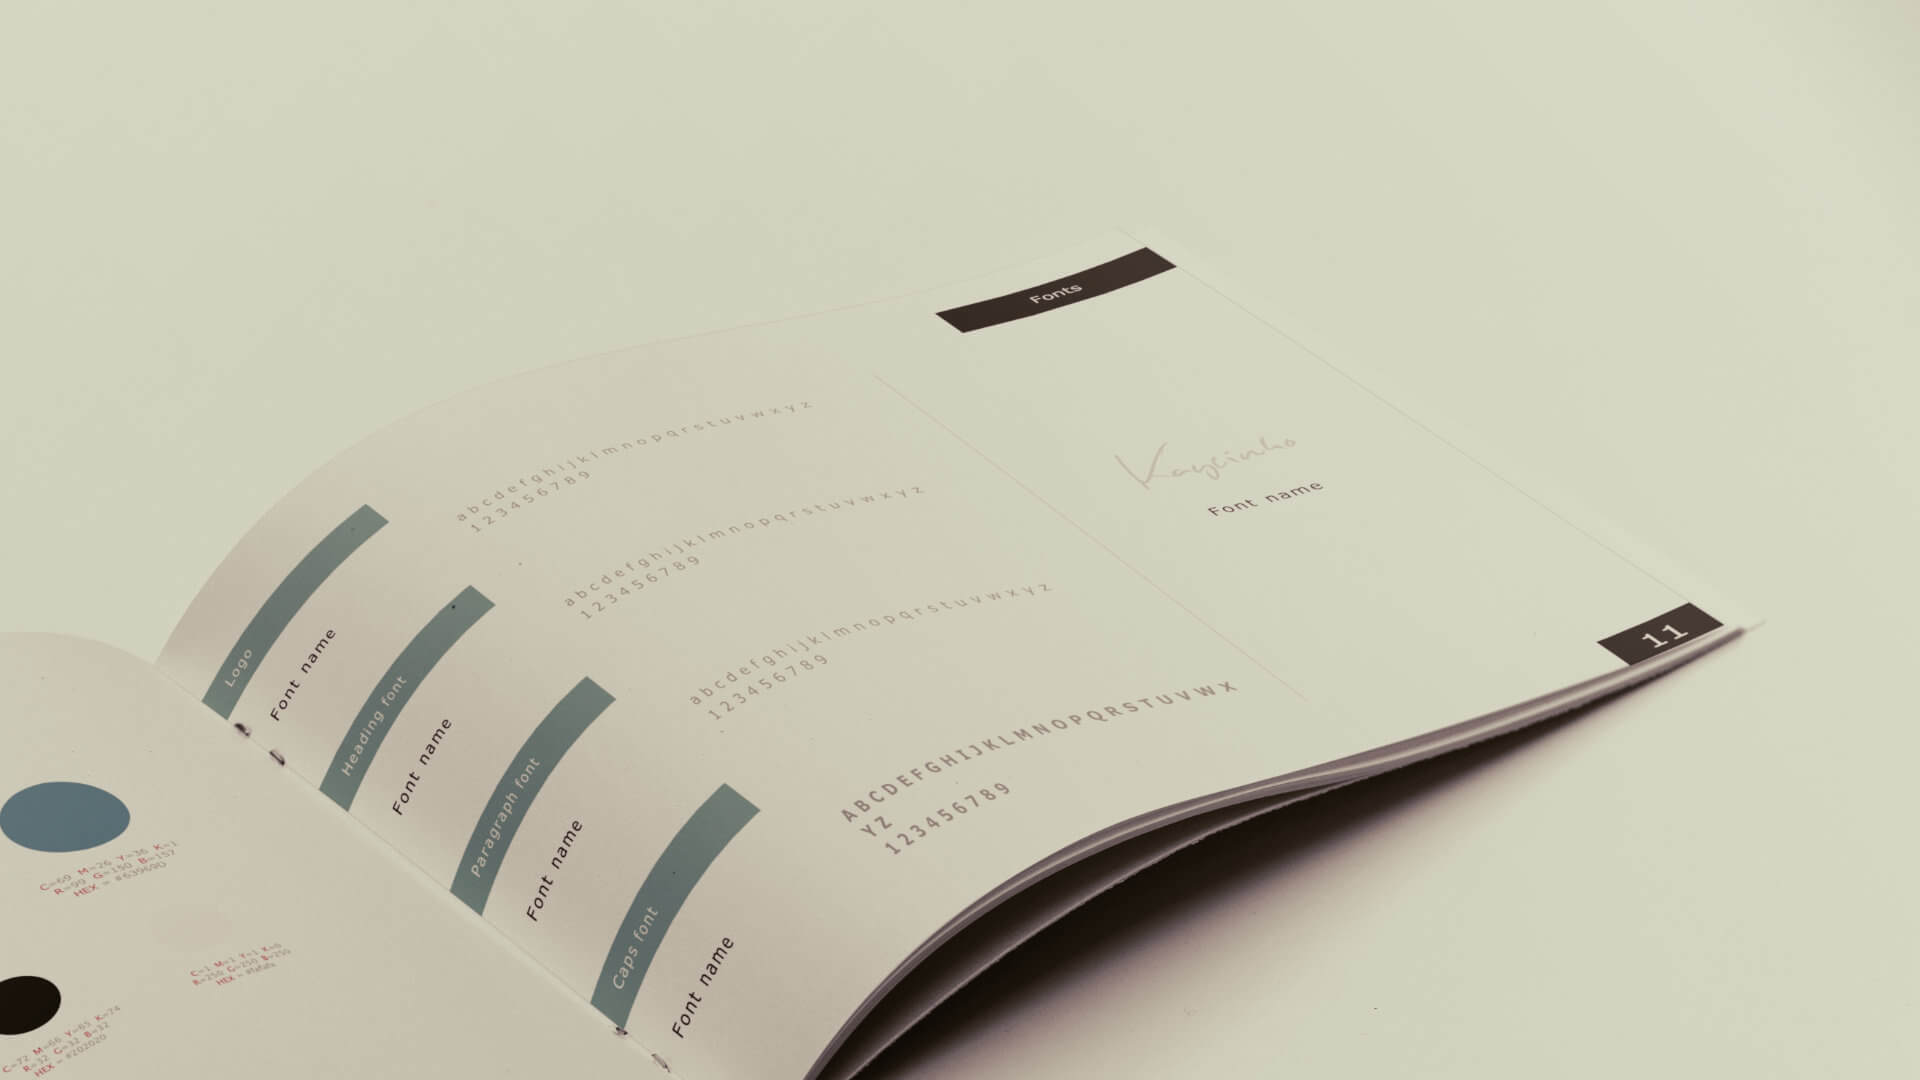 Brand guidelines template approach 2: use a simple yet effective template